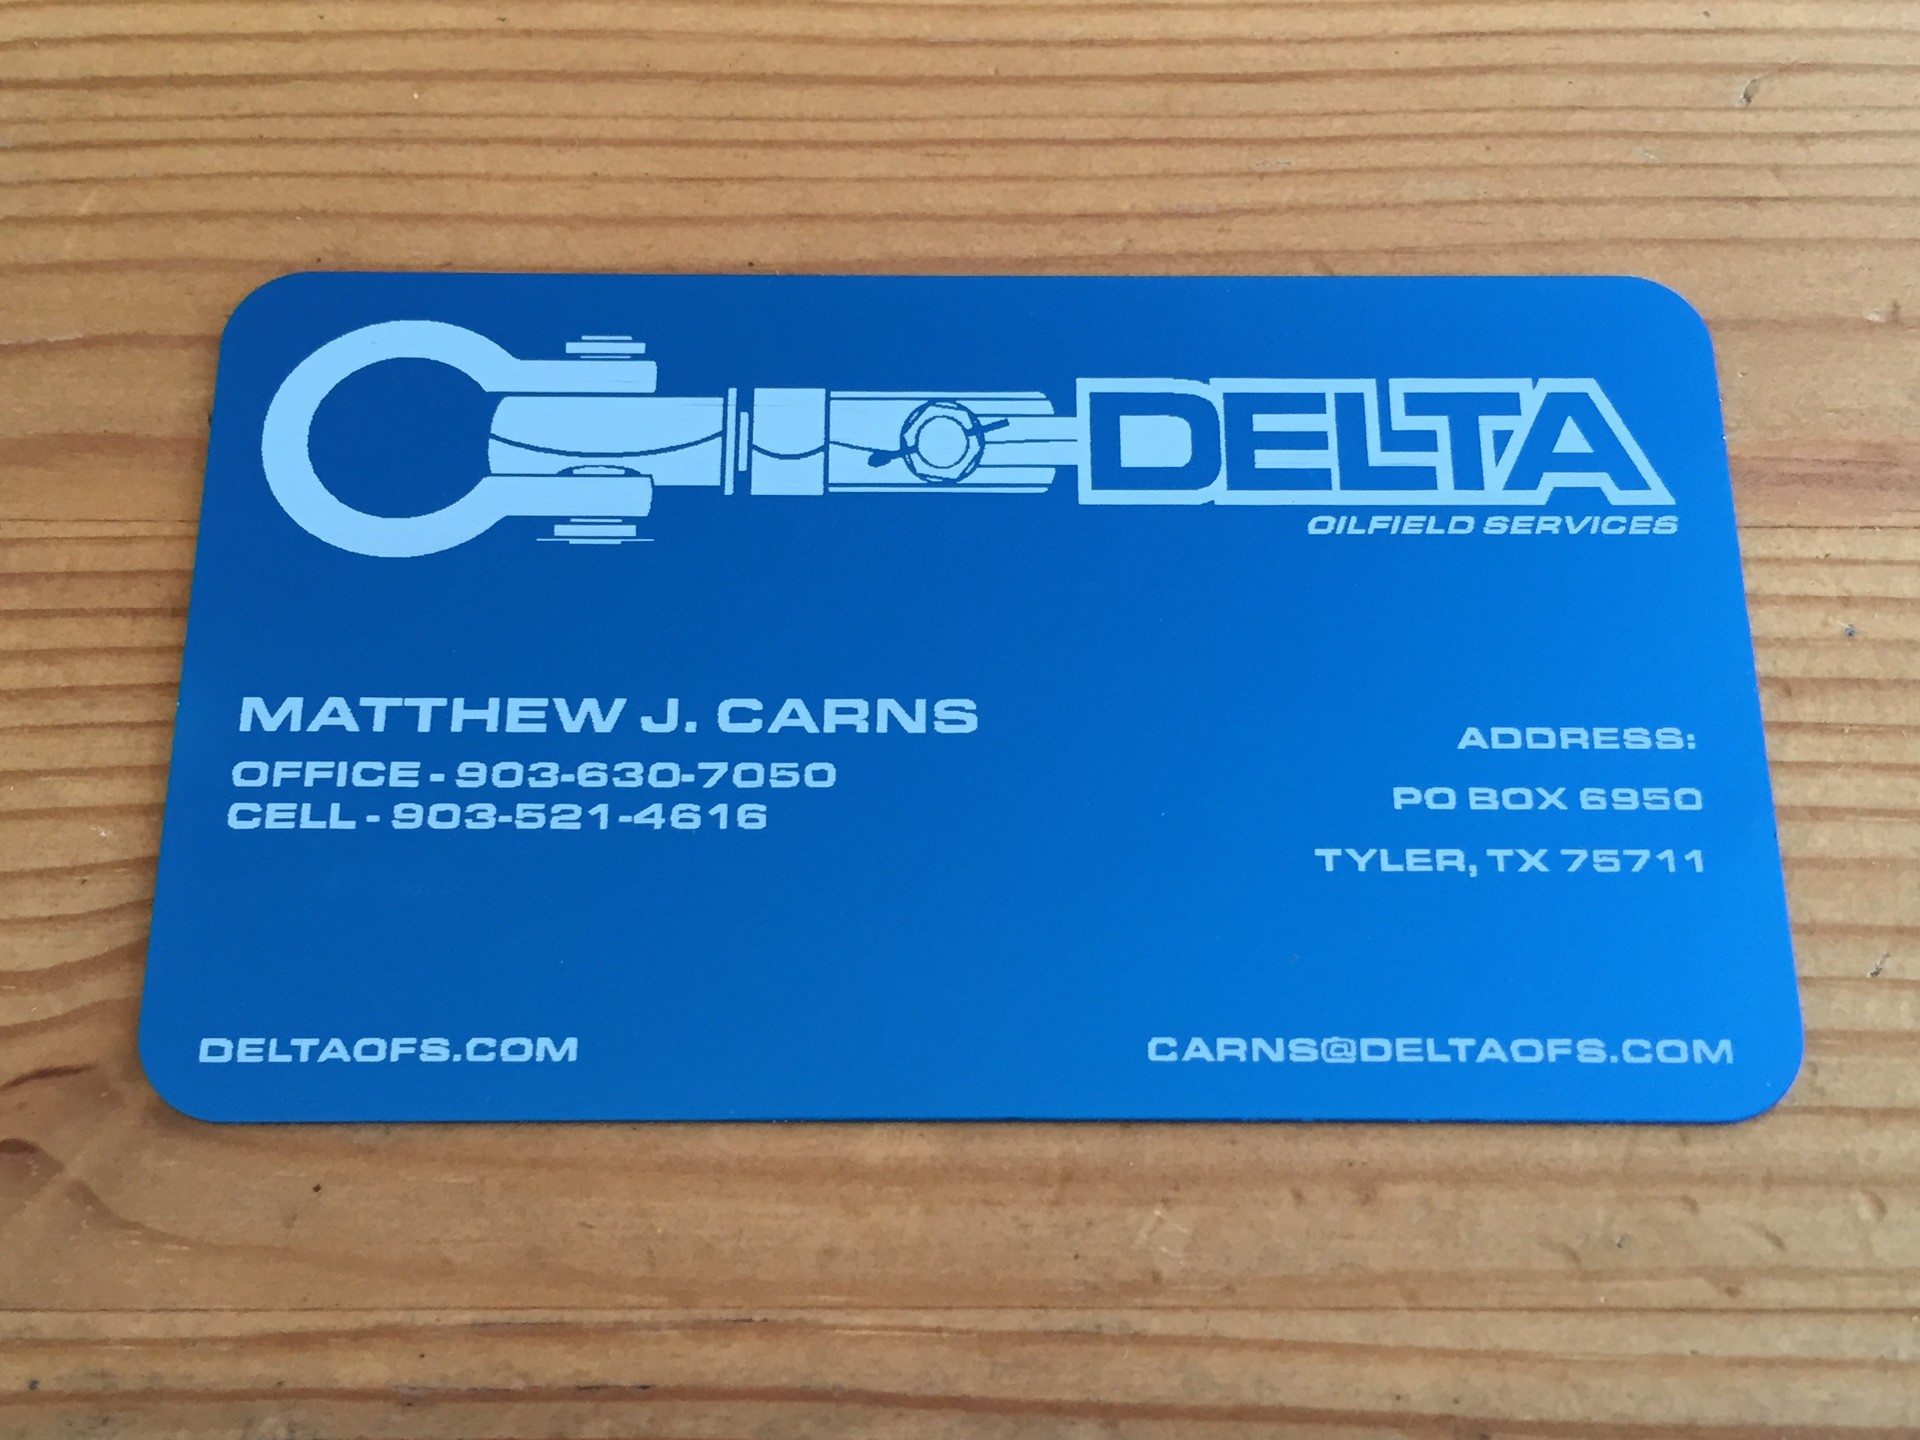 Studio eQ -- 100 Laser-Etched Thin Blue Metal Business Cards